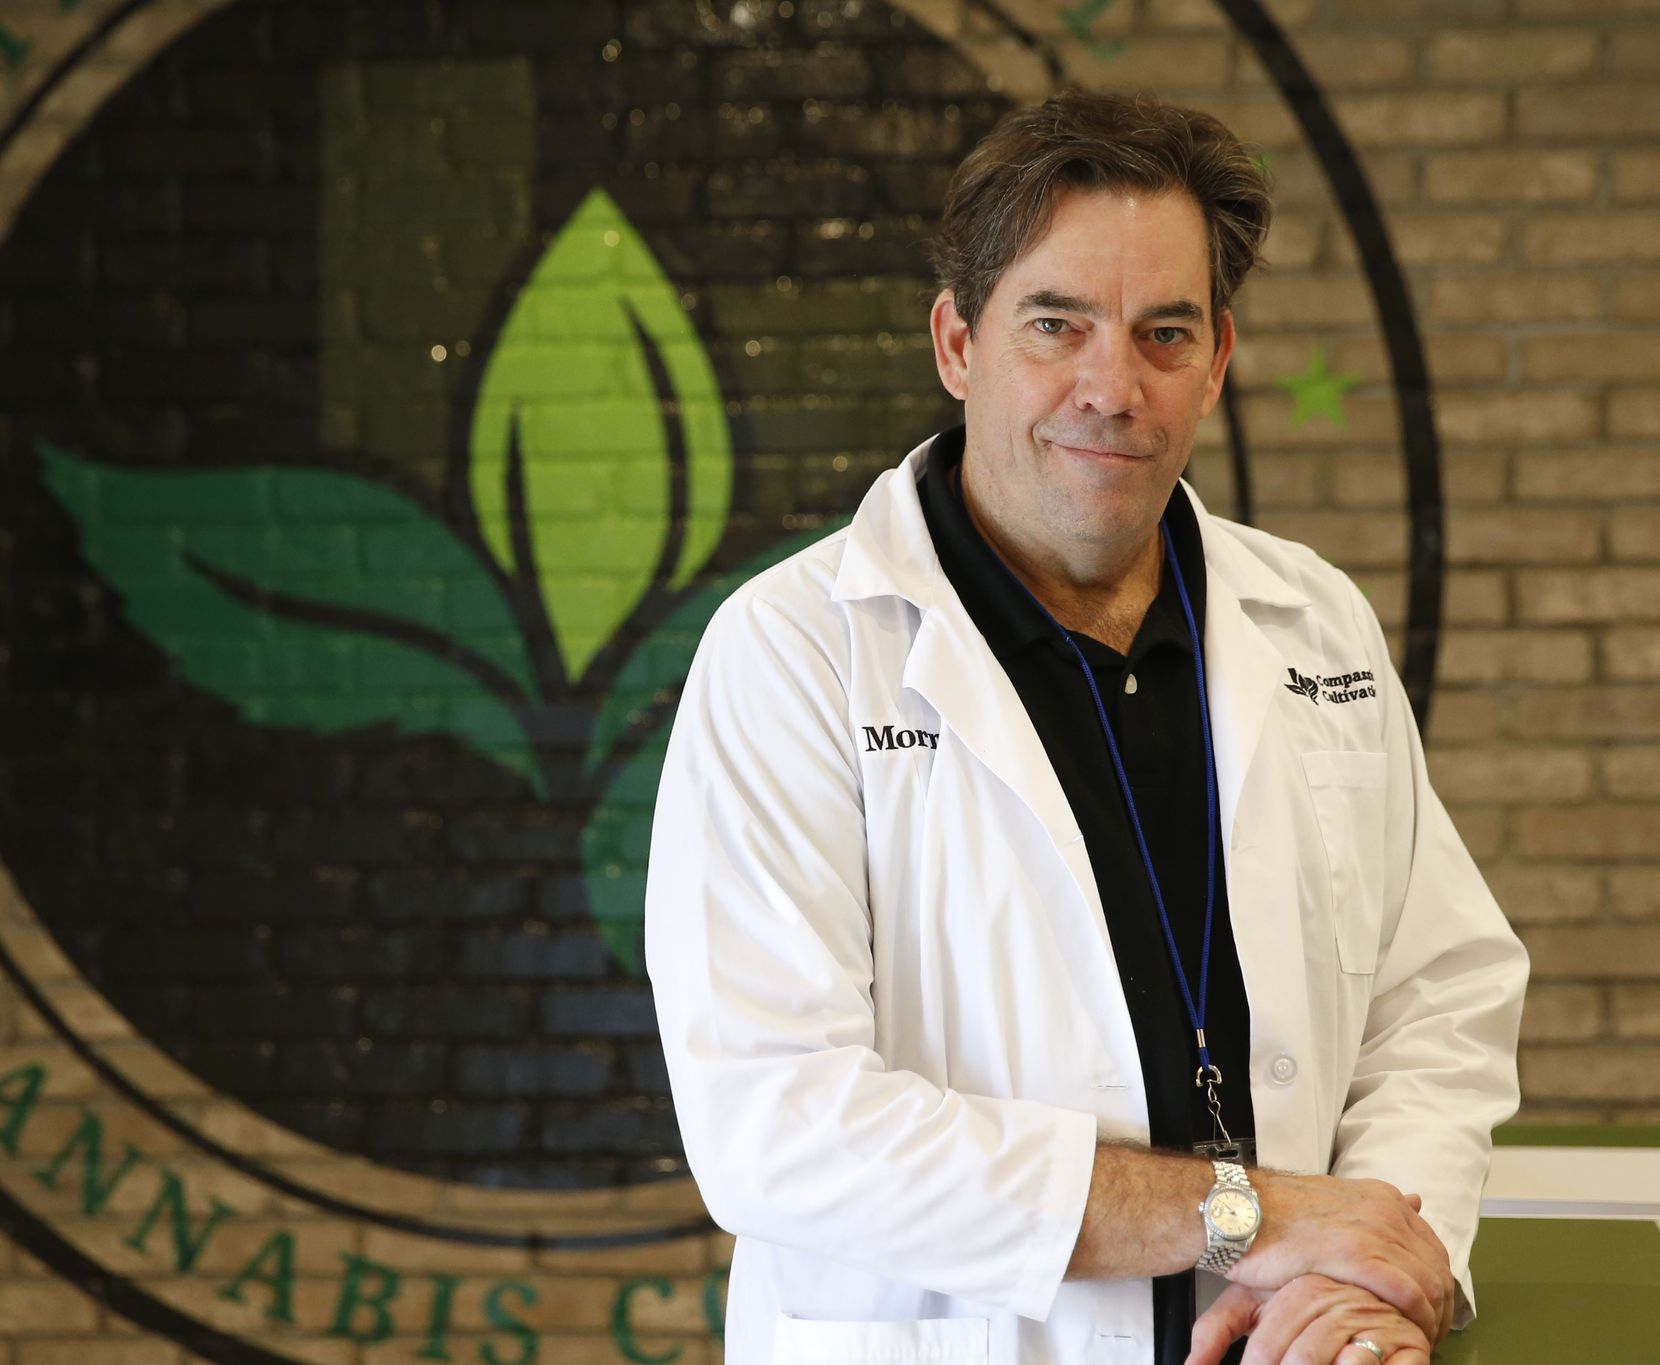 Morris Denton, CEO of Compassionate Cultivation, started the company with four other Texas business partners. He's given tours to politicians and neurologists to show them how cannabis oil is made. He said the tours help to dispel myths about medical marijuana. (Vernon Bryant/The Dallas Morning News)